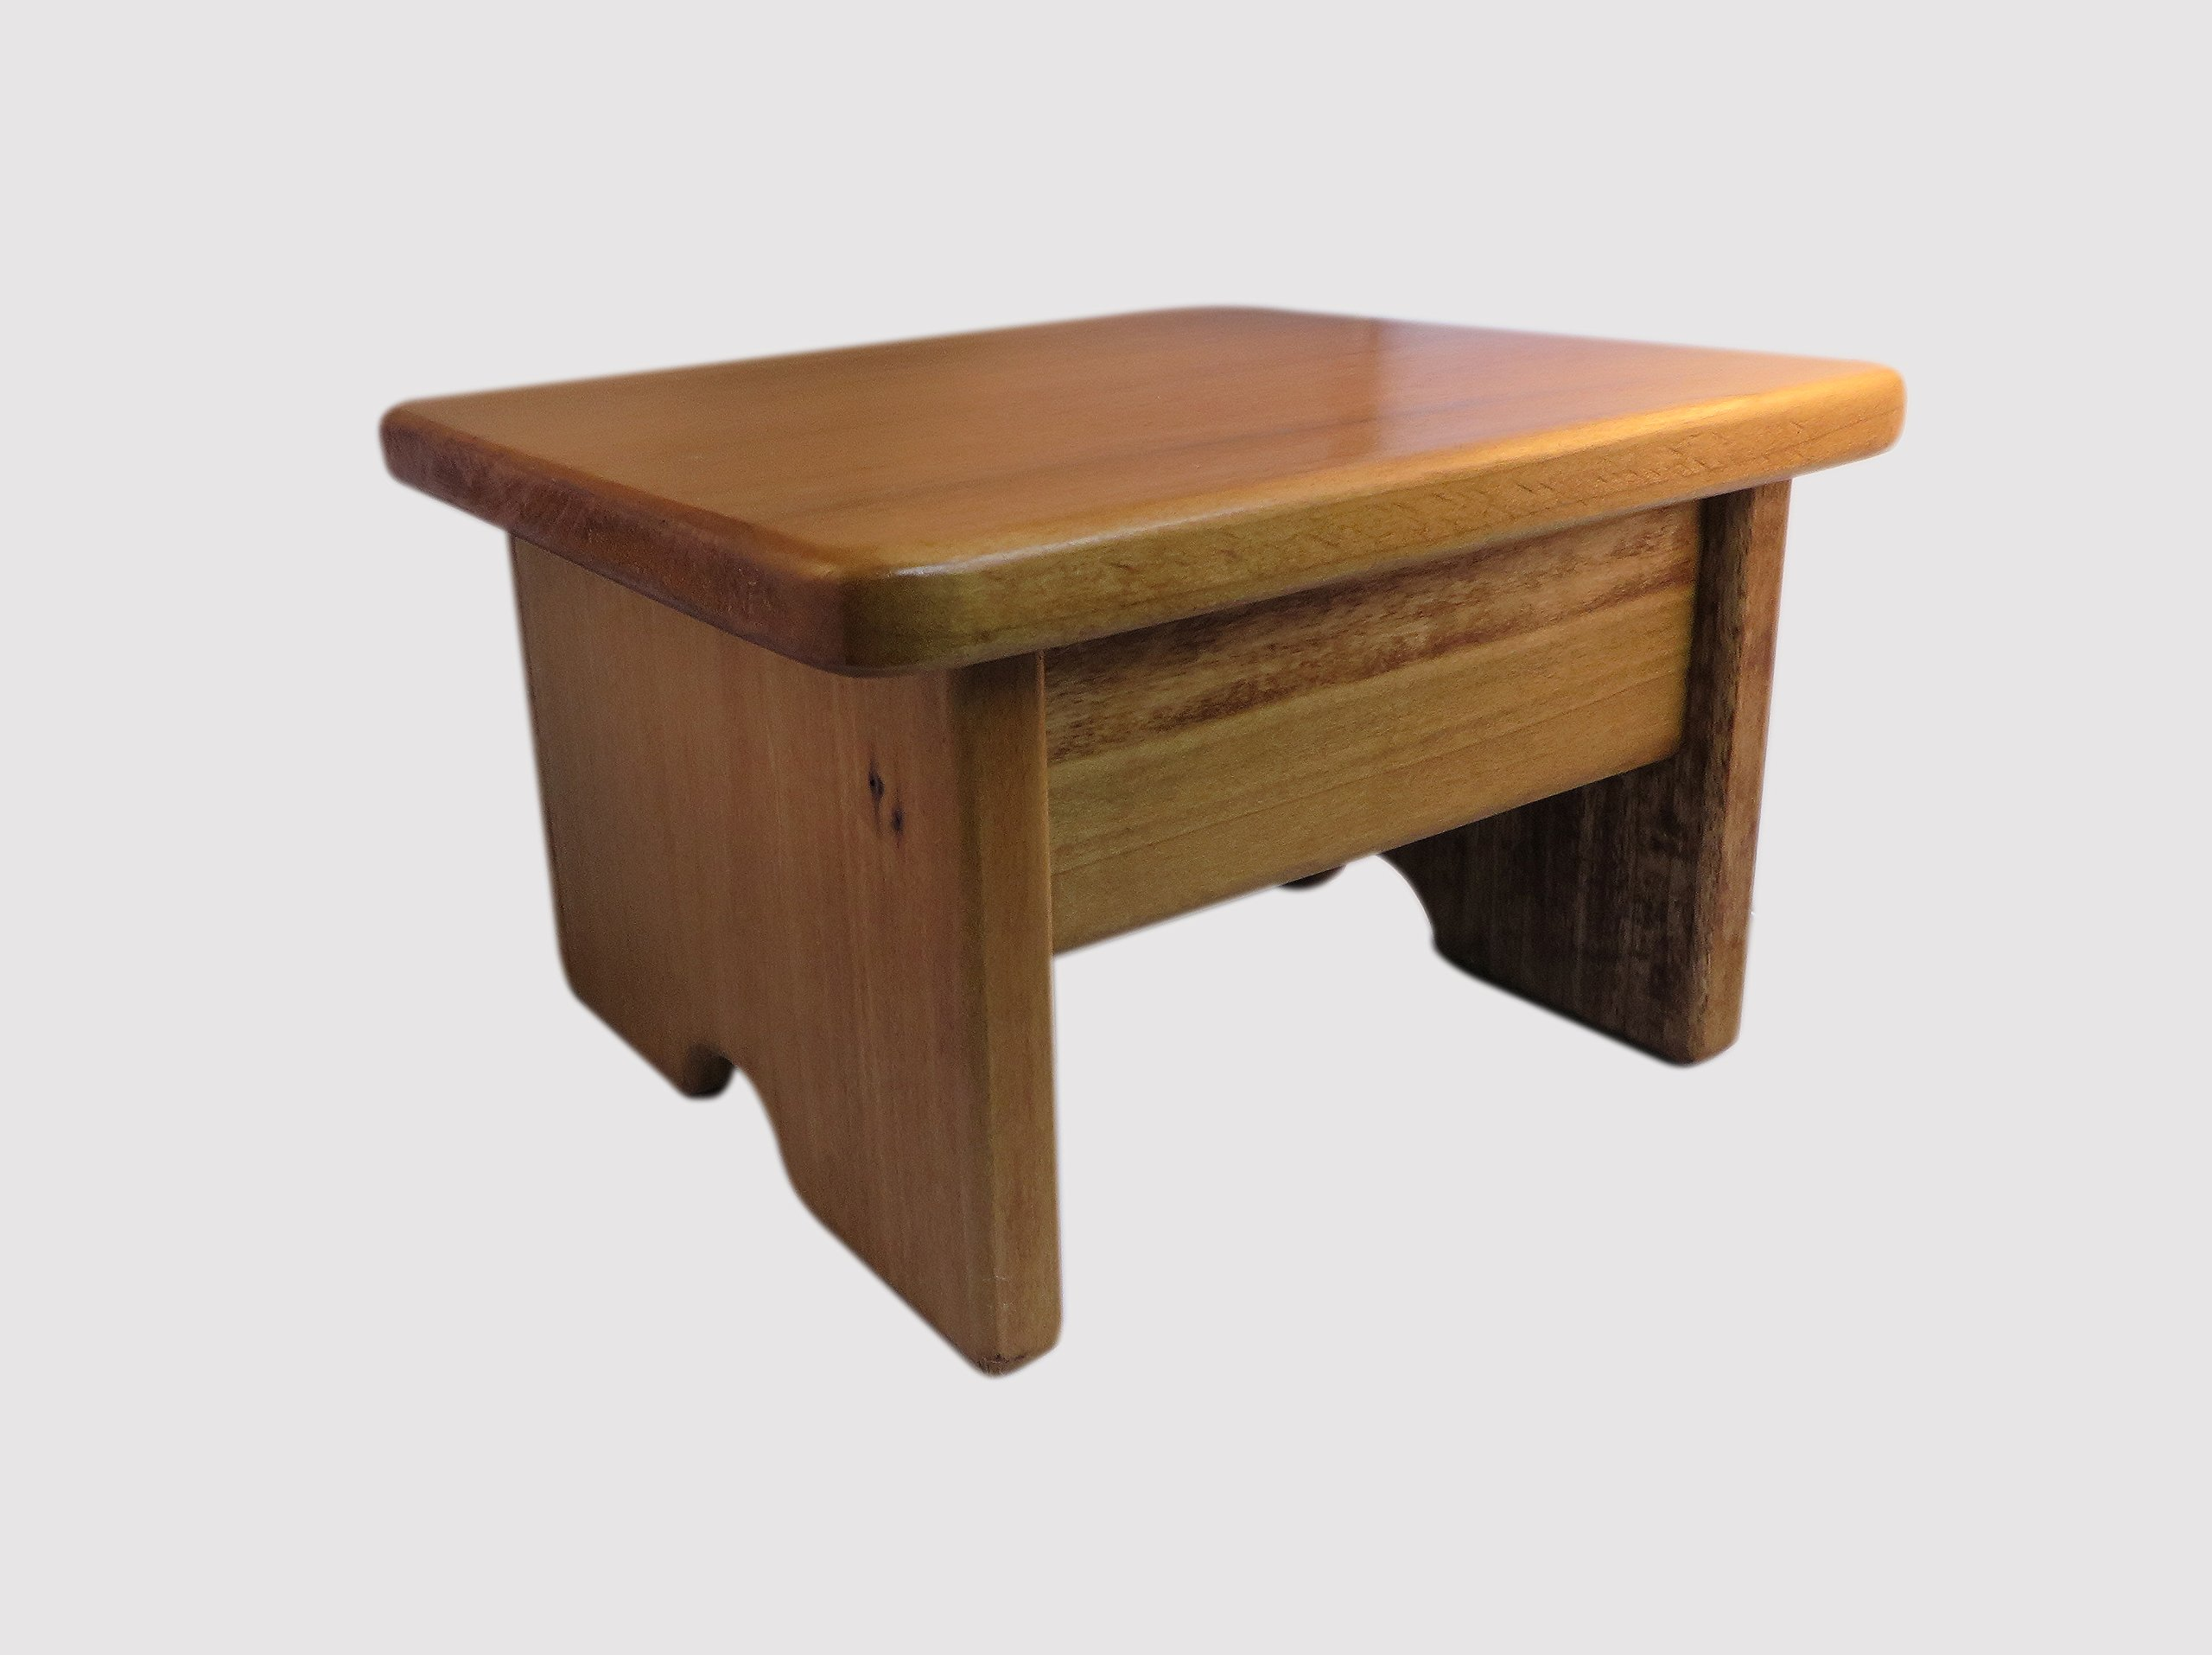 Foot Stool Poplar Wood Maple Stain 7'' Tall Mini (Made in the USA) by KR Ideas